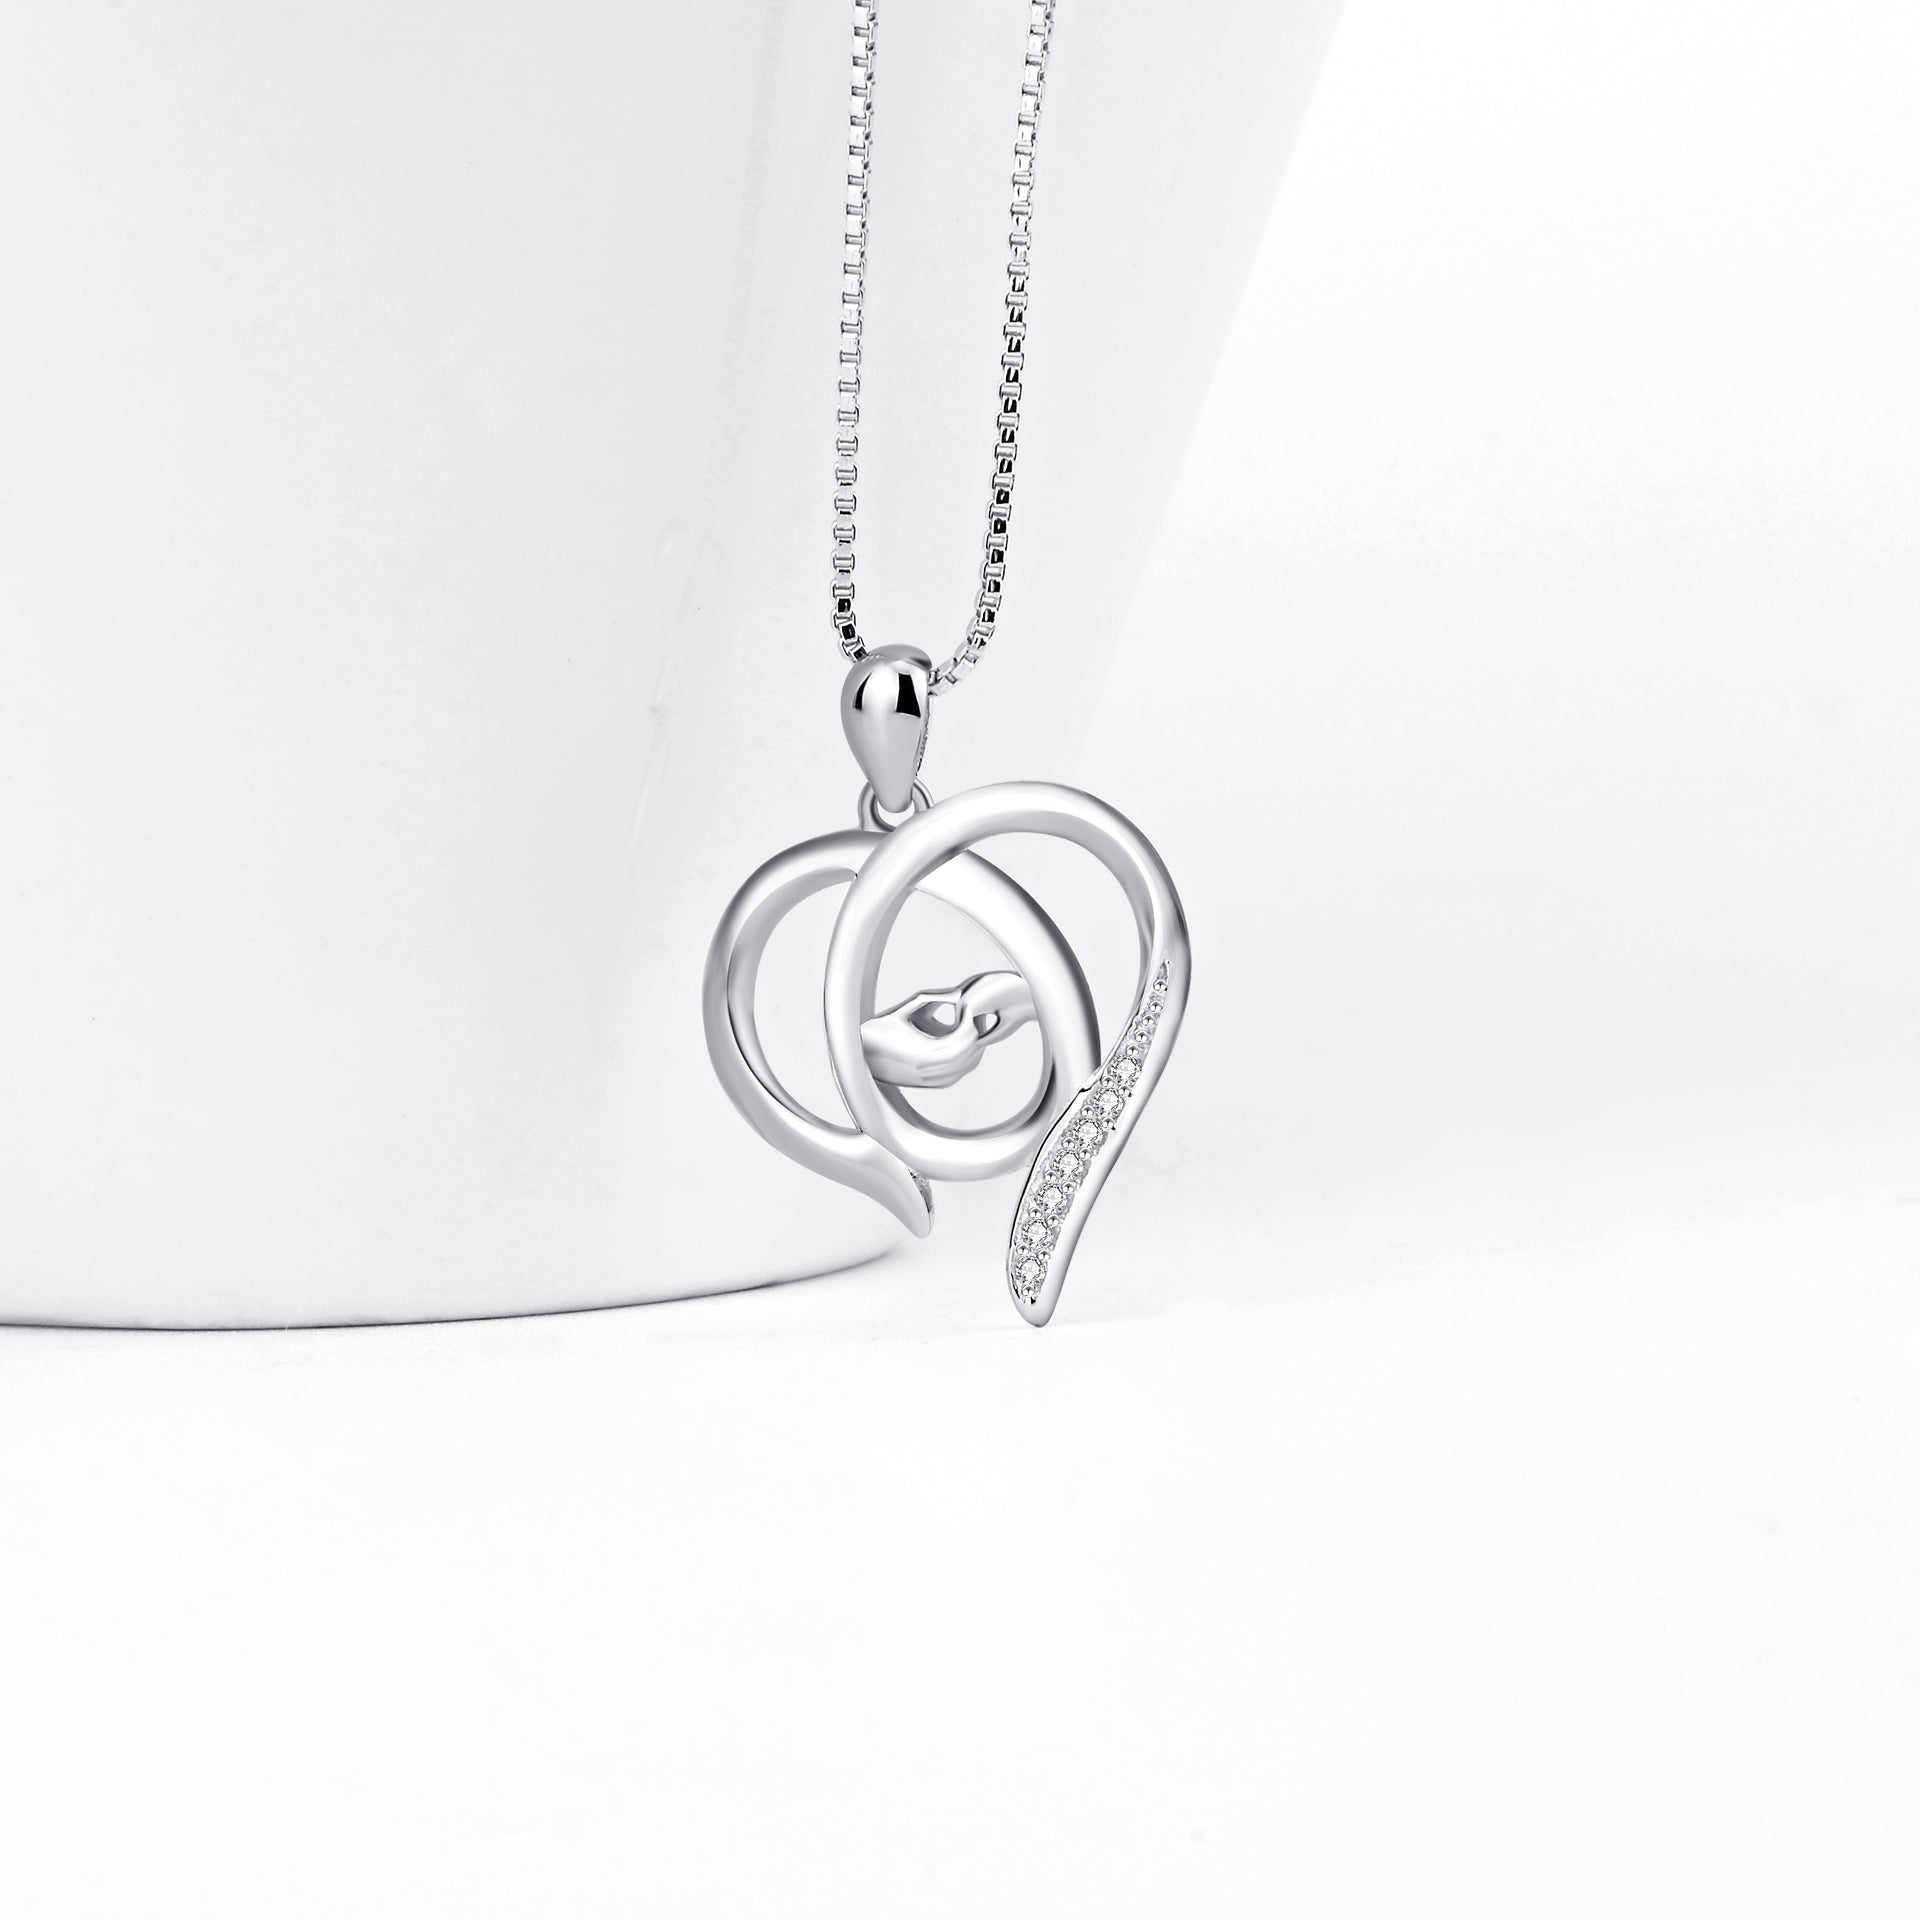 Large Heart Pendant Silver Necklace Wholesale Girlfriend Loving Hearts Necklace Fashion